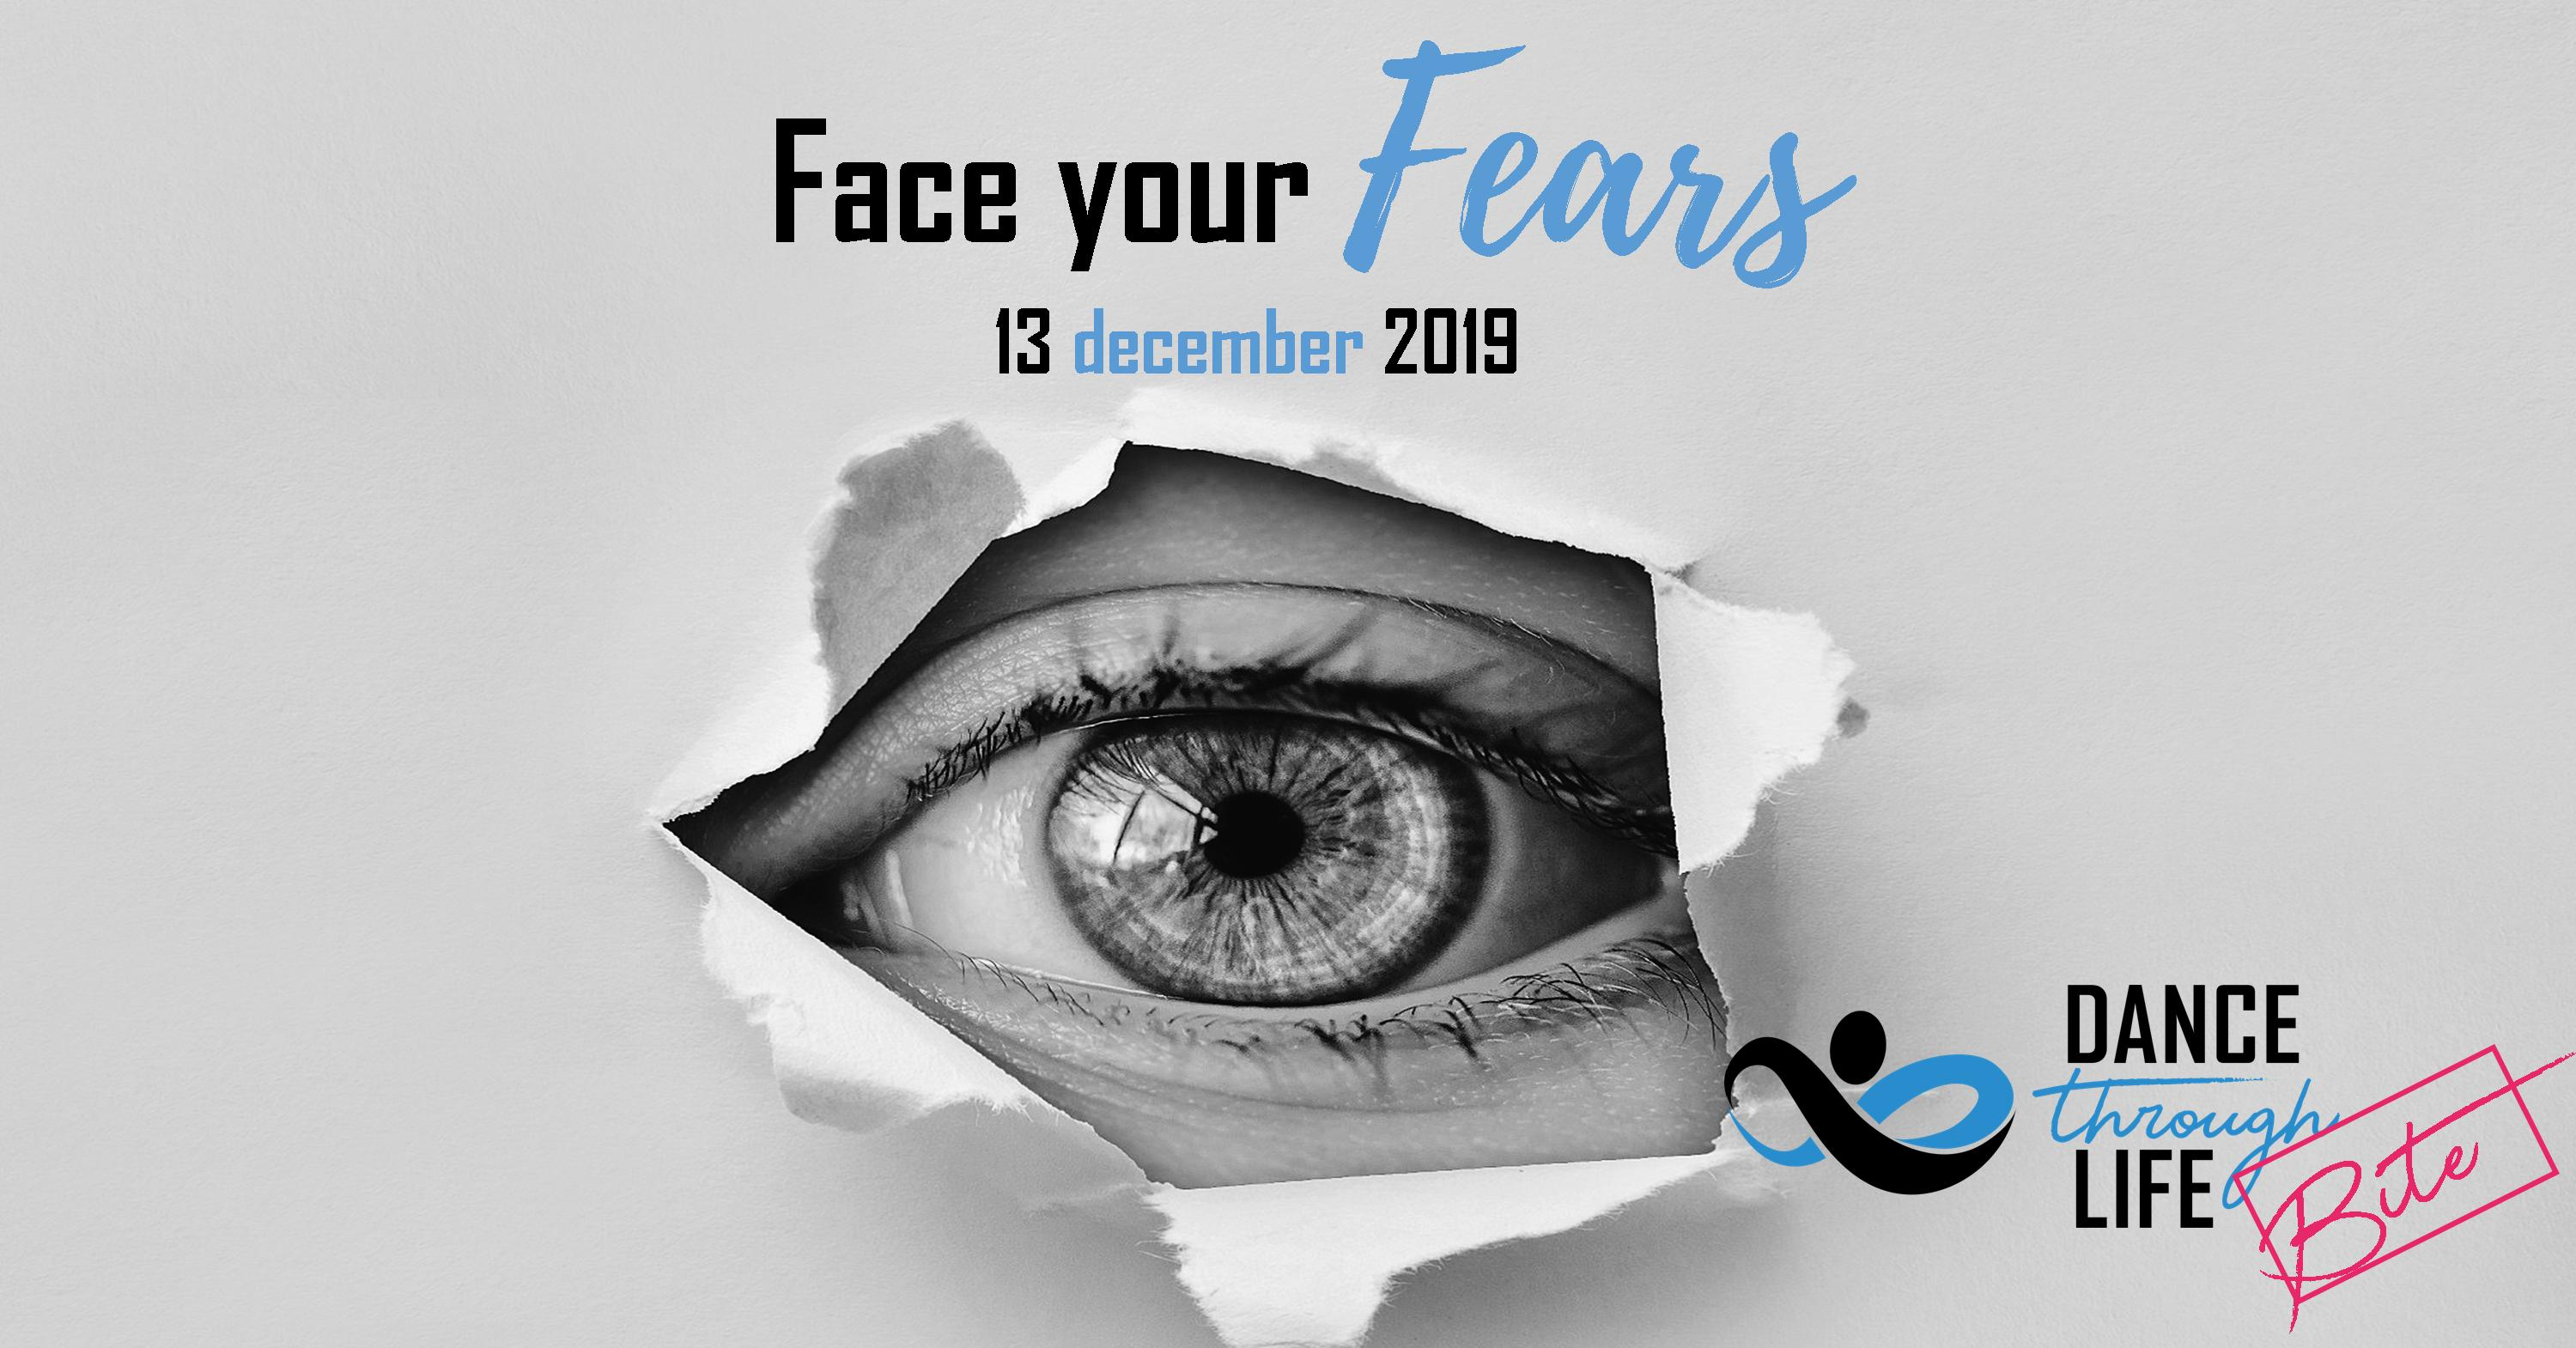 FB event face your fears 12